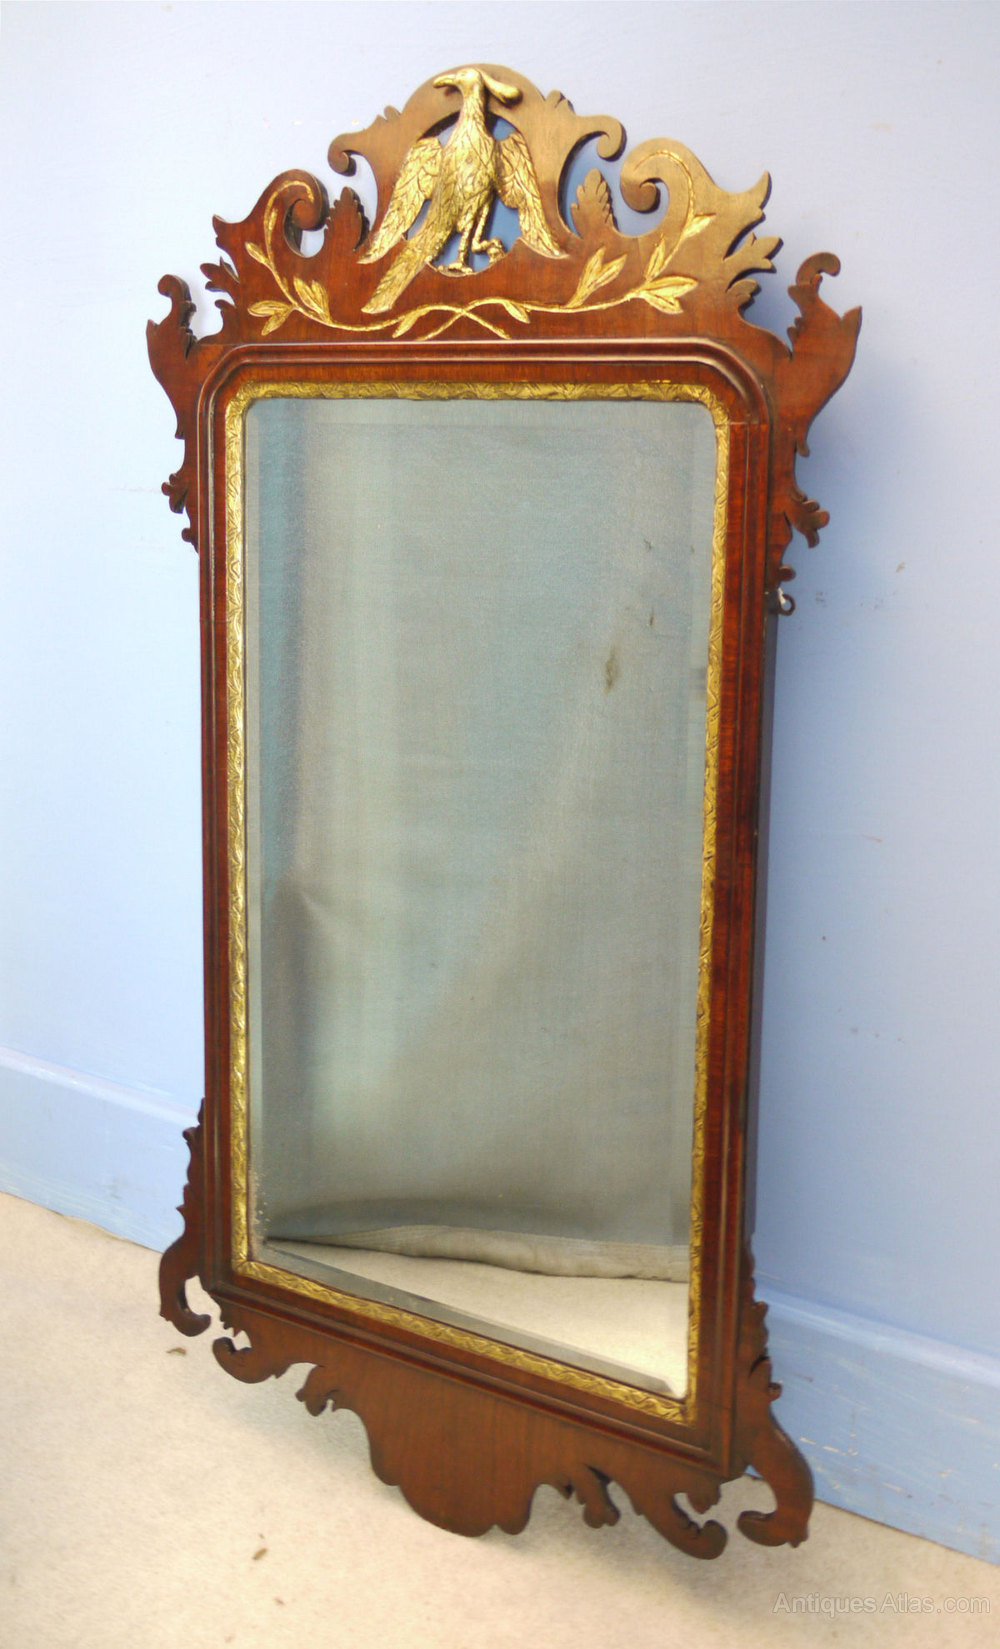 Antiques atlas georgian mahogany and gilt wall mirror for Antique wall mirrors